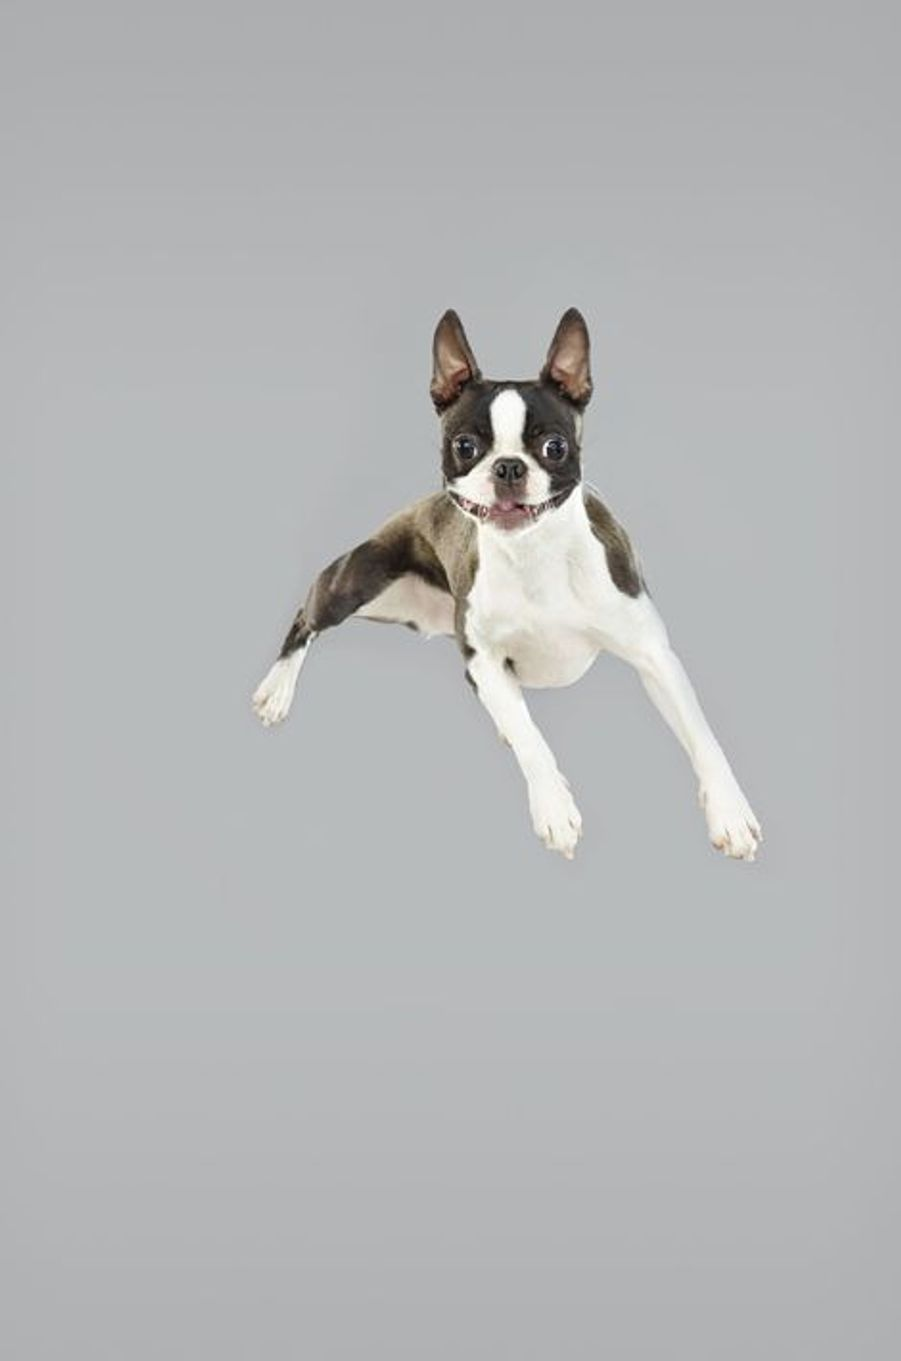 Air Dogs, les chiens volants